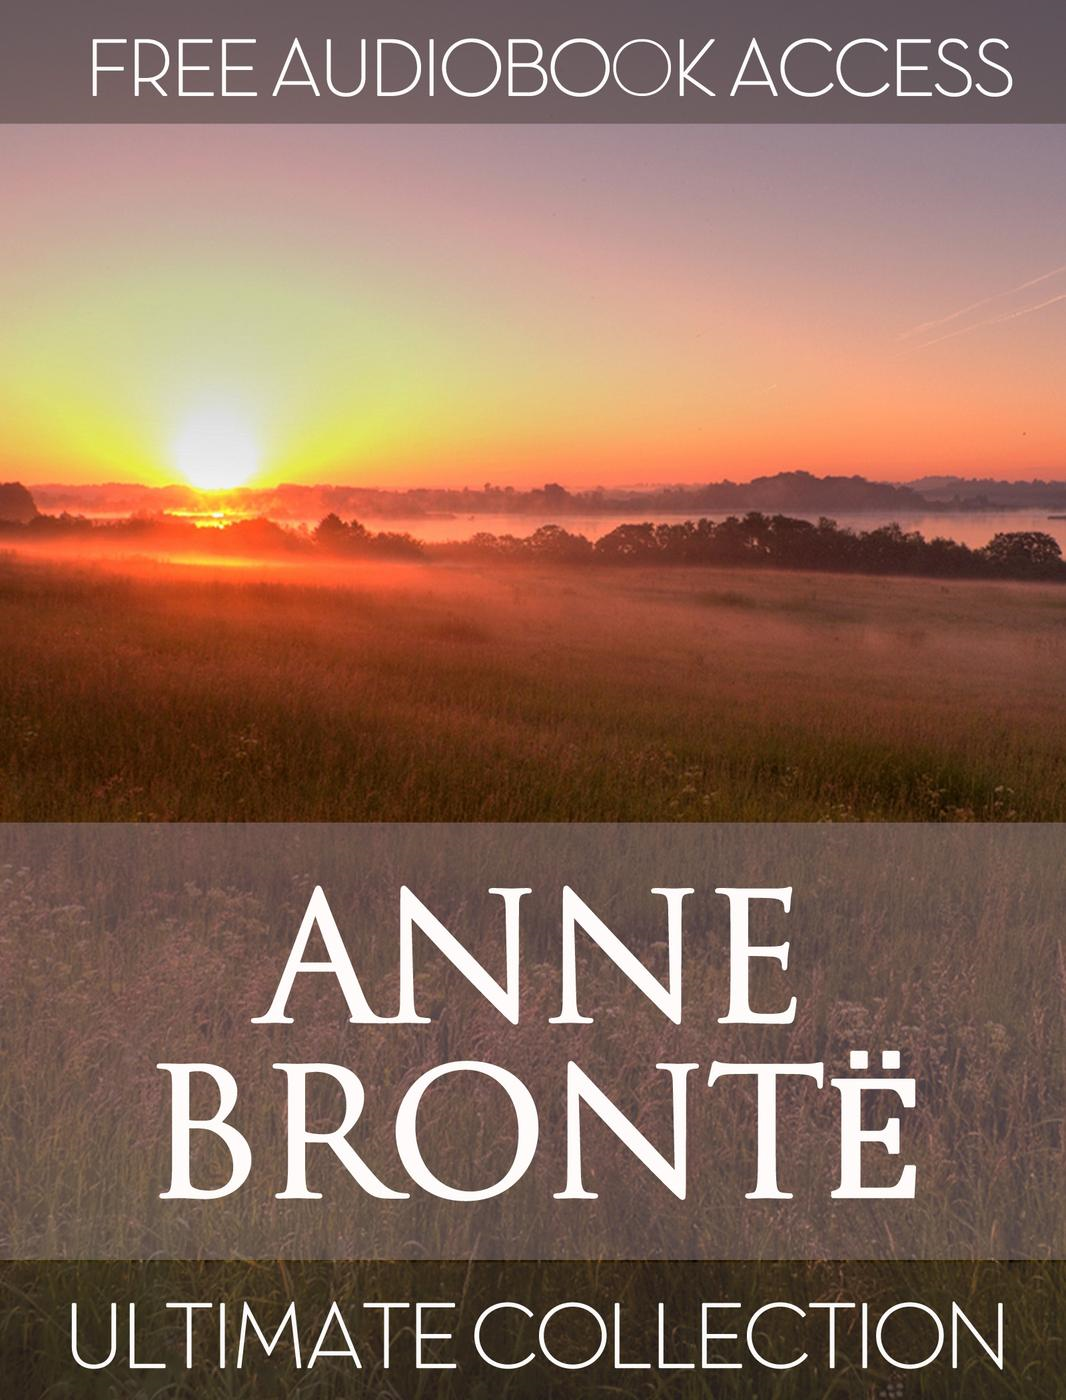 Anne Bronte: Ultimate Collection (with Free Audiobook Access)